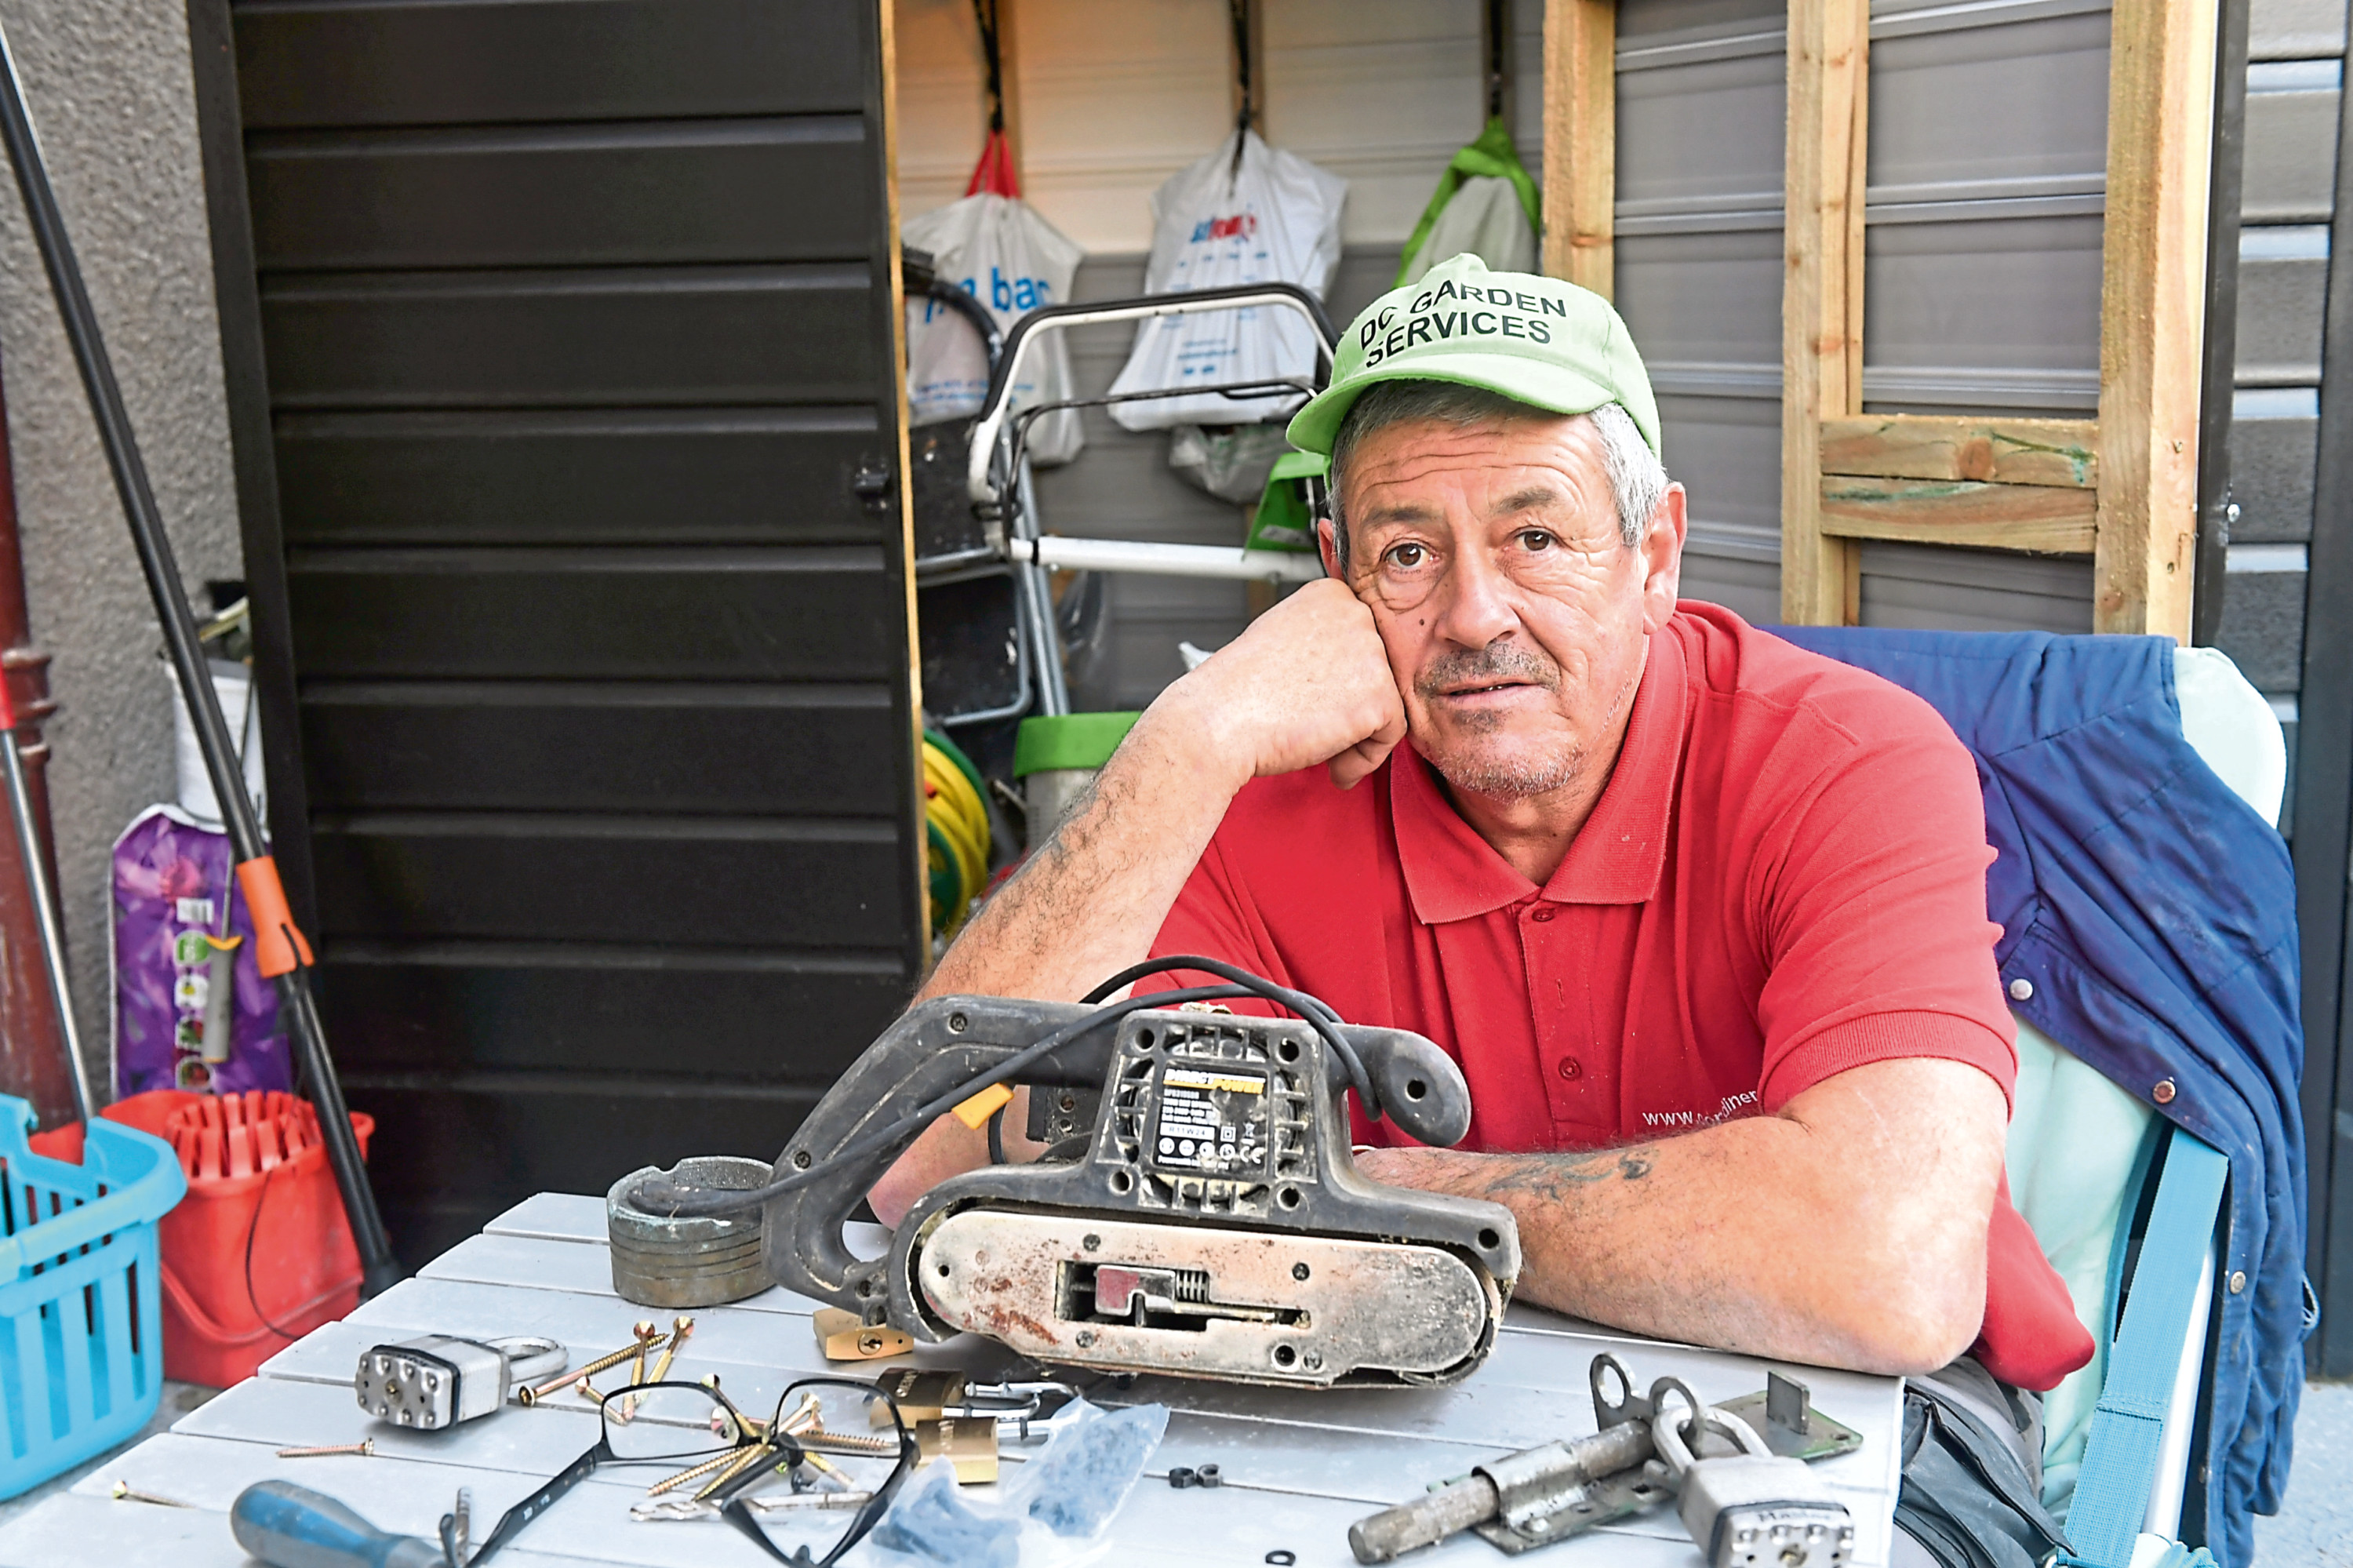 Dave Cumming is appealing after £2,000 of tools were stolen from his shed